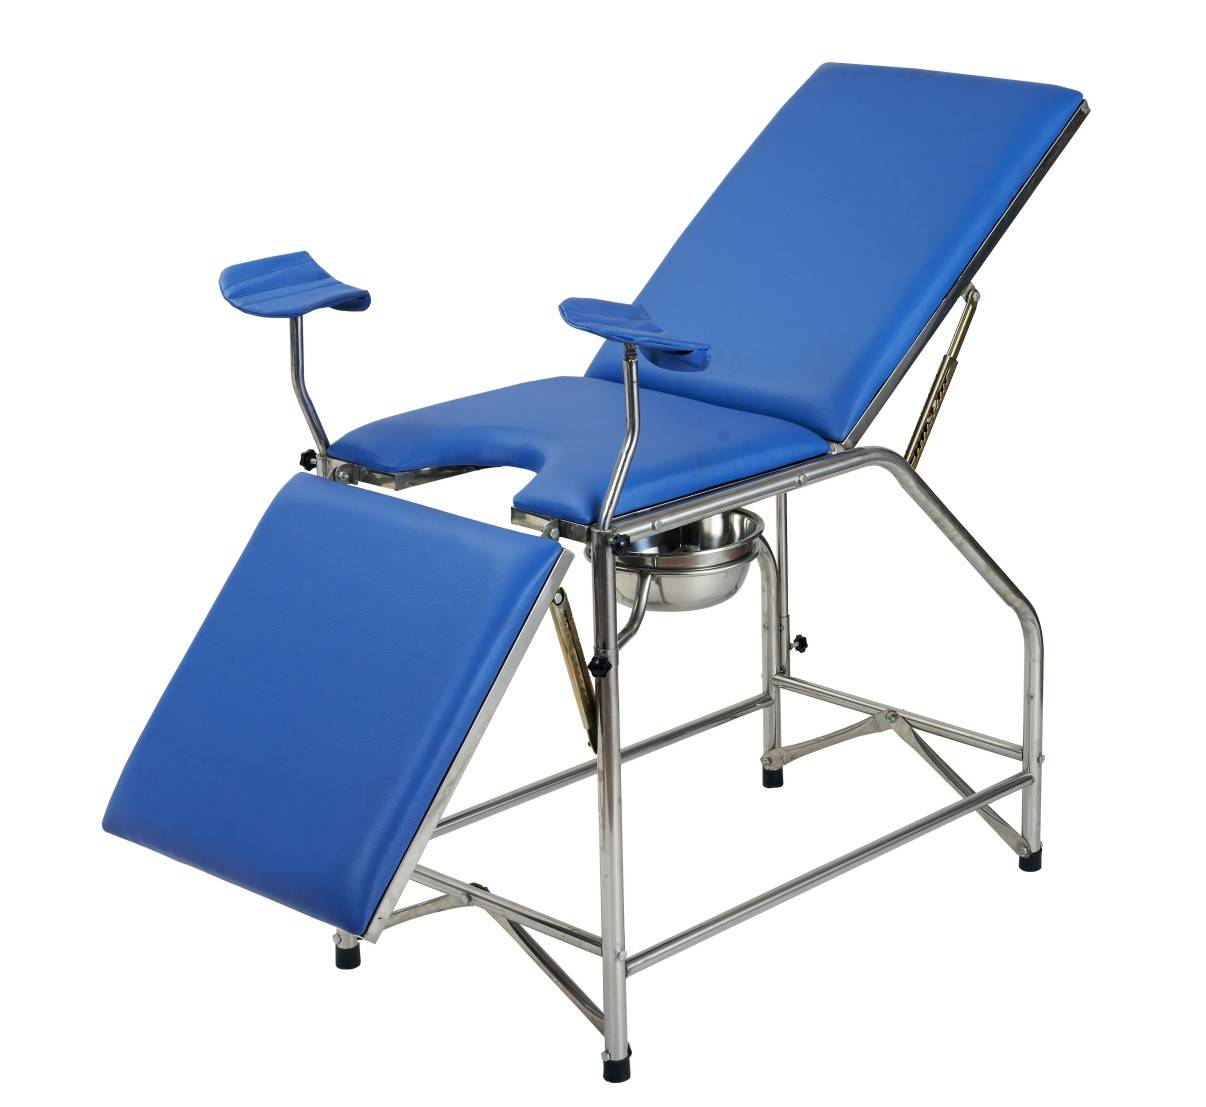 Hospital beds Stainless Steel Gynecology Examination Bed